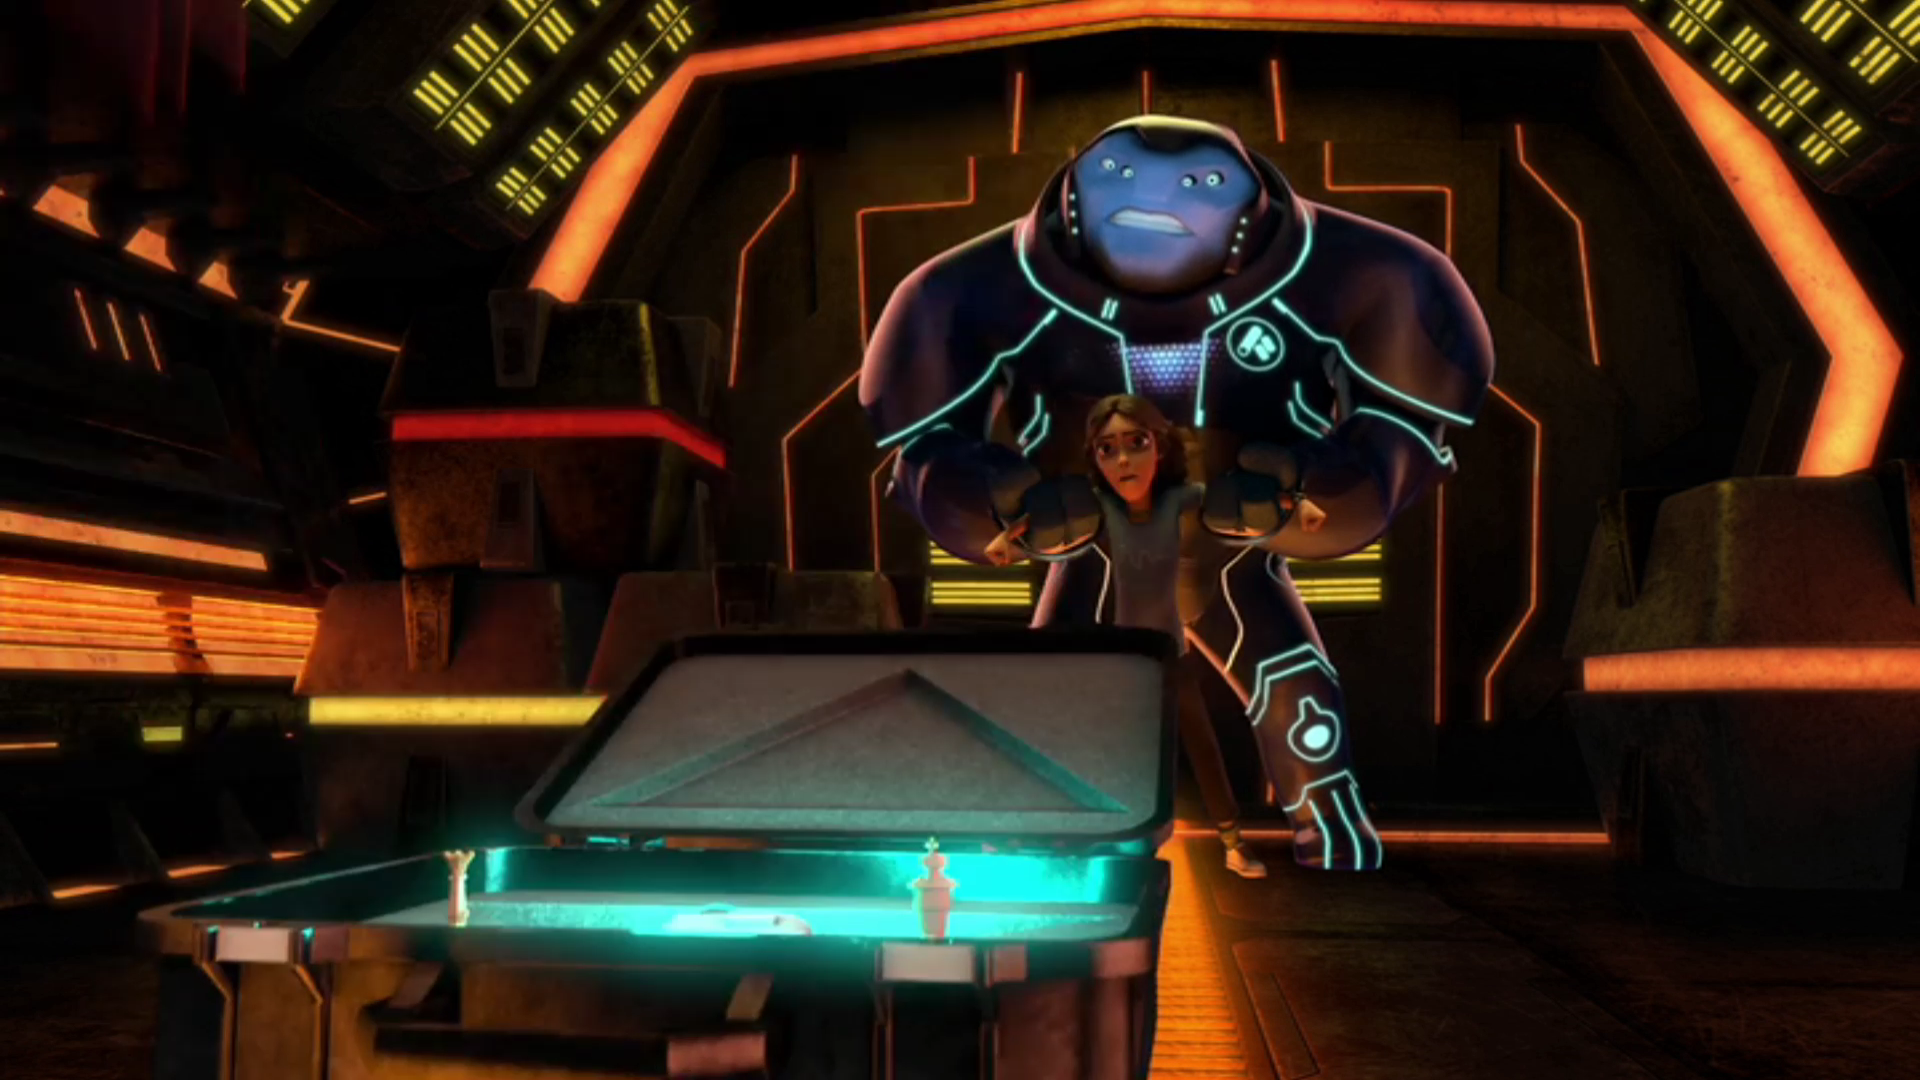 3Below E11 explosive suitcase looks oddly similar to the eyestone suitcase from Th P1E9